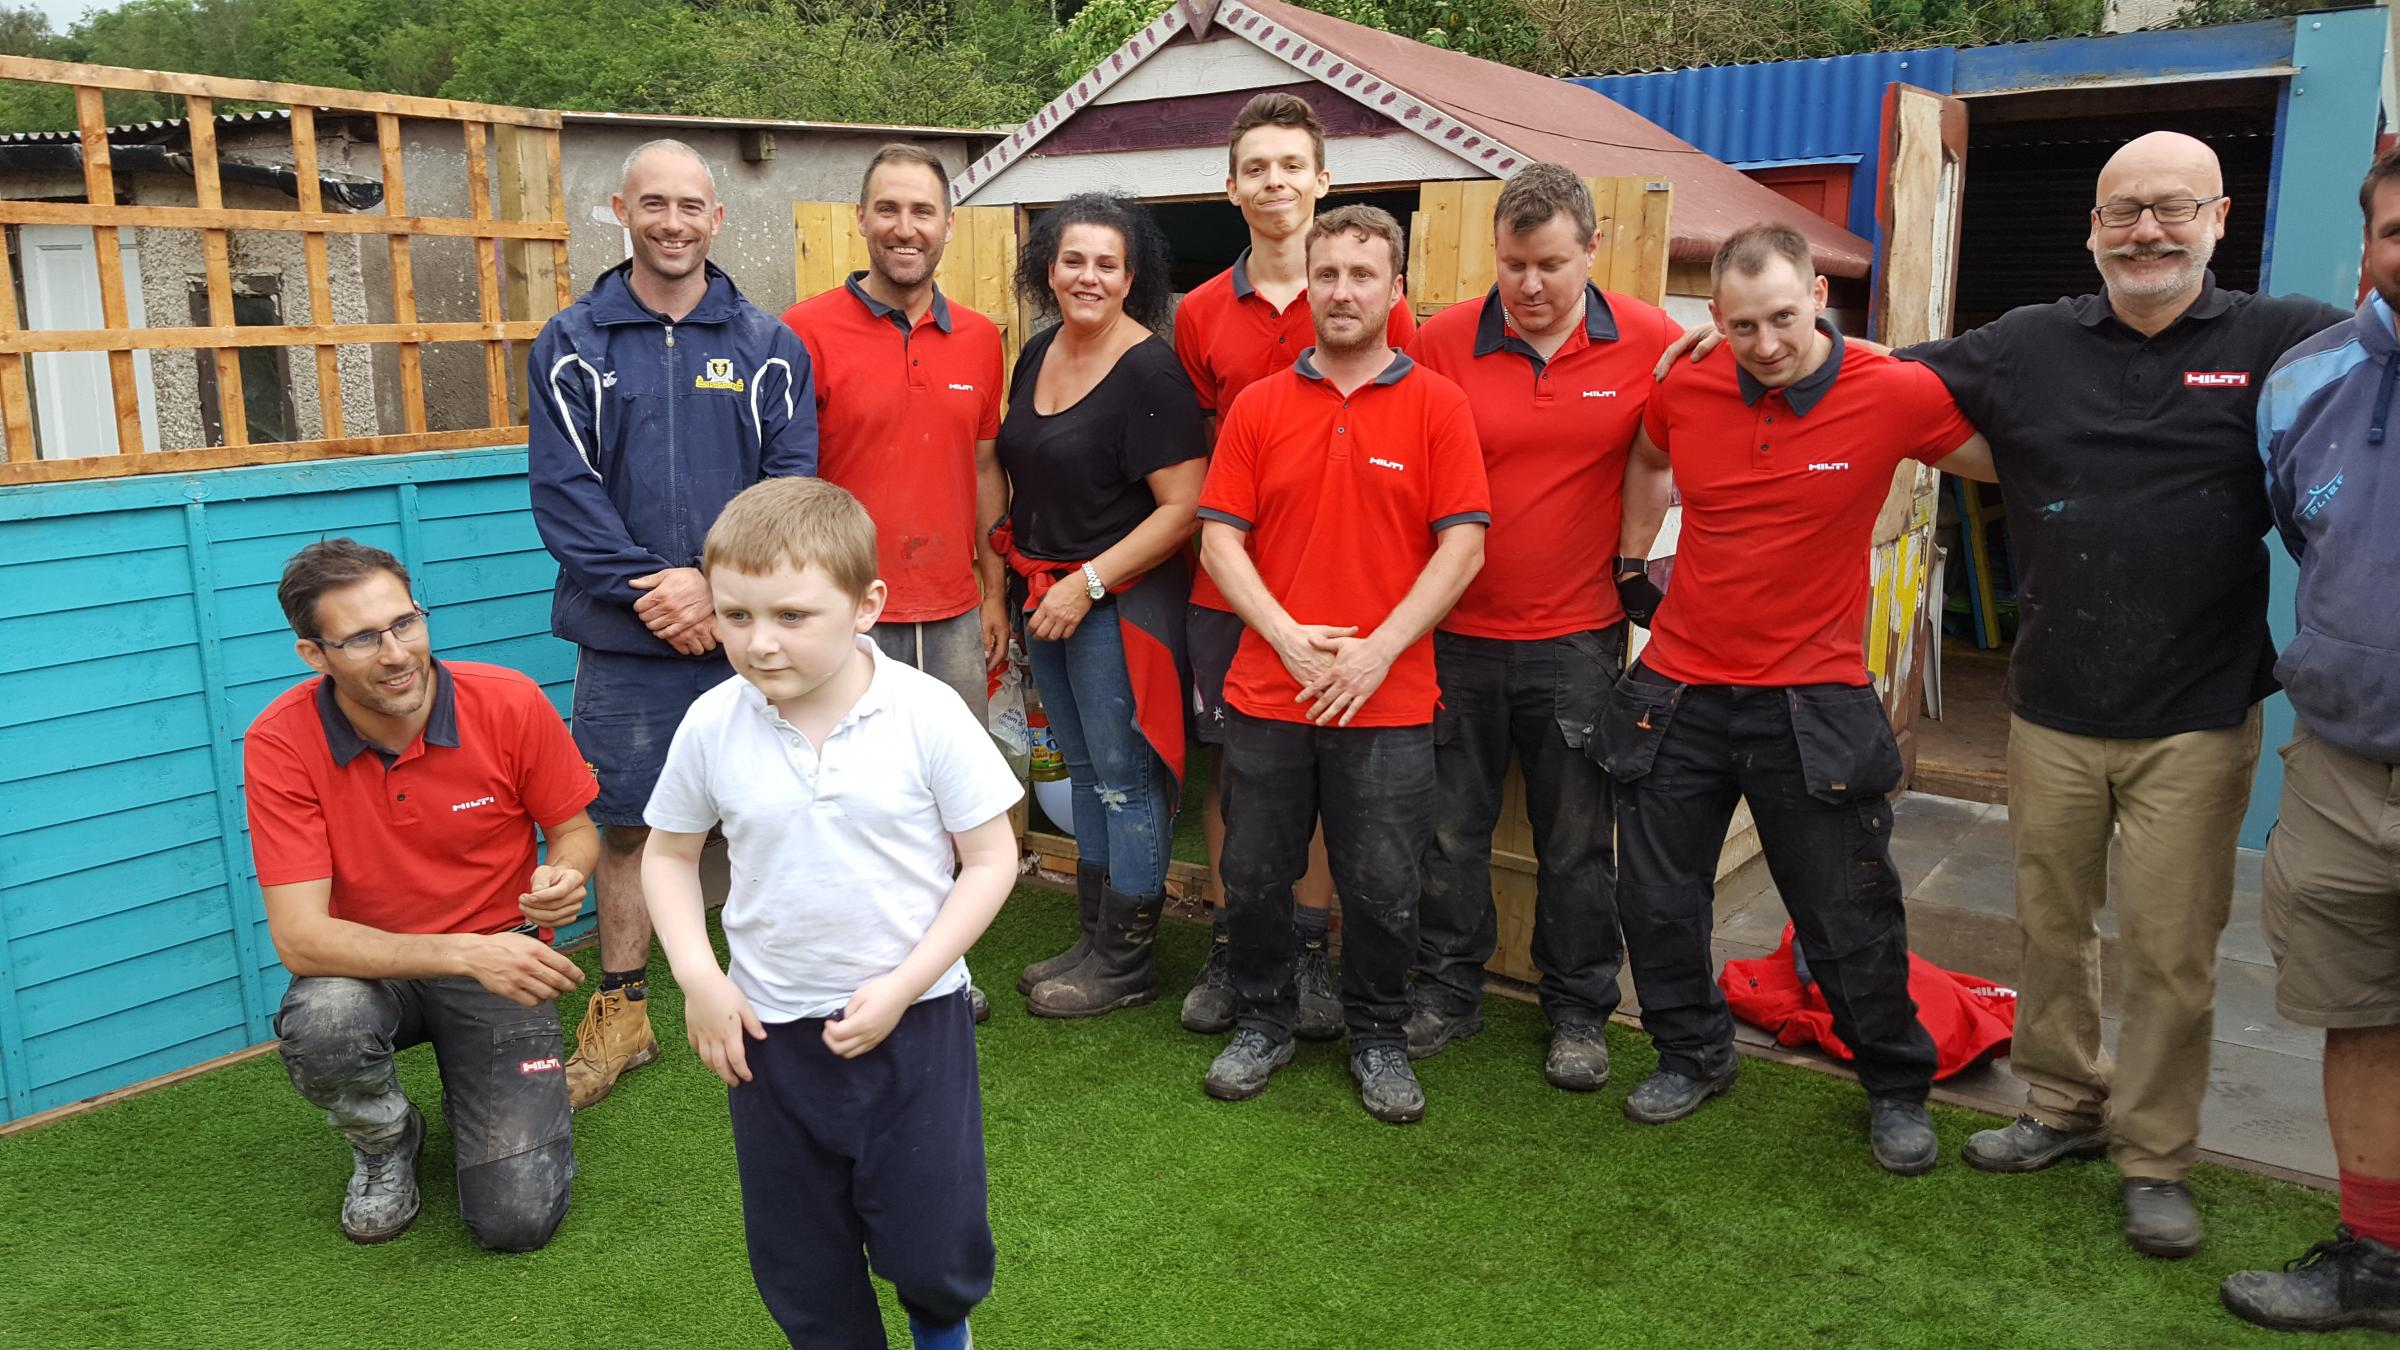 A five-year-old Ebbw Vale boy with severe learning disabilities now has a safe garden haven to play in